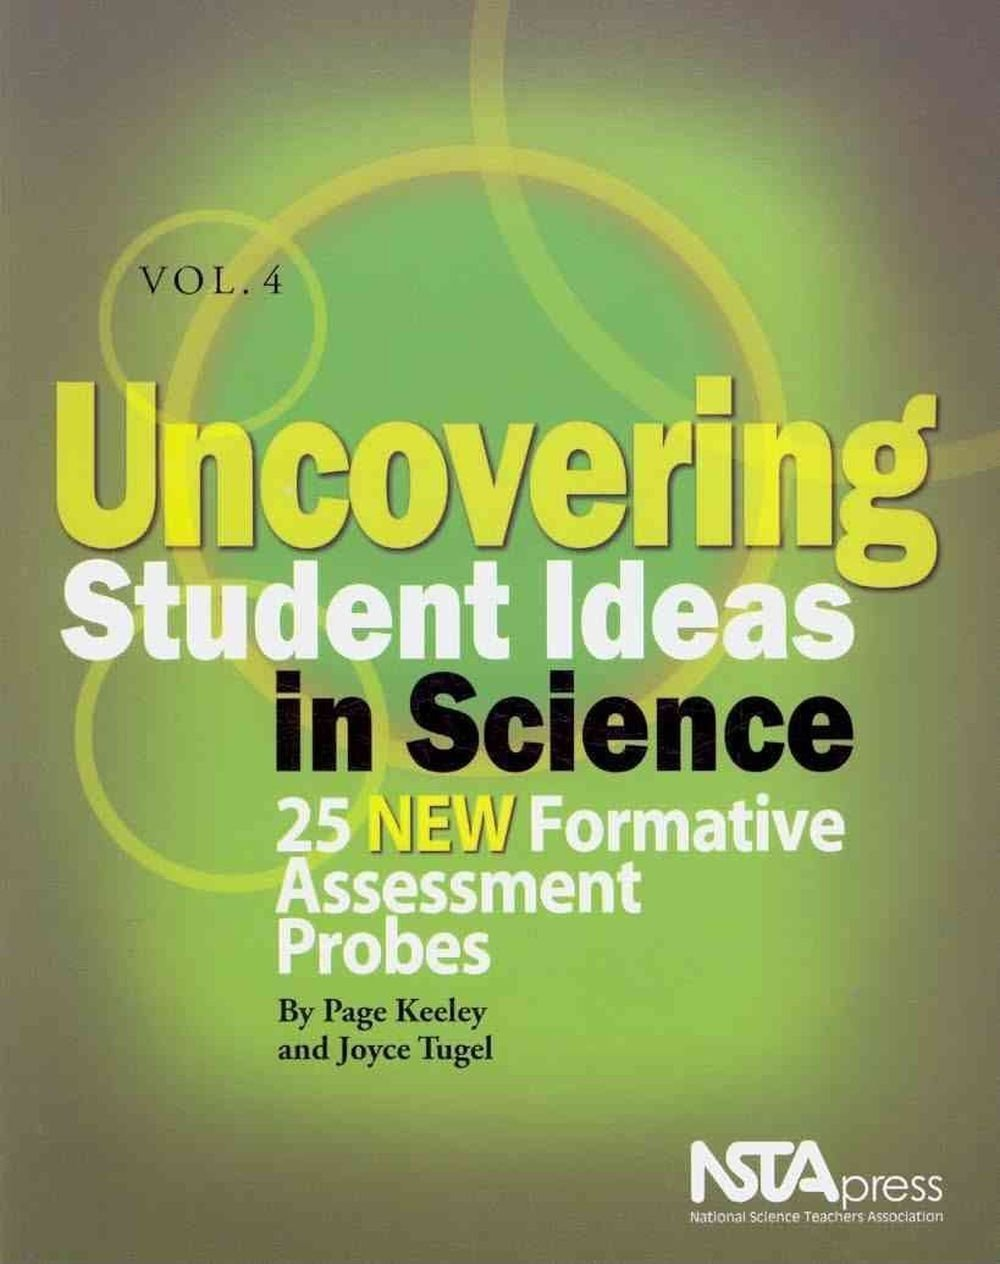 uncovering student ideas in science, vol. 4: 25 new formative